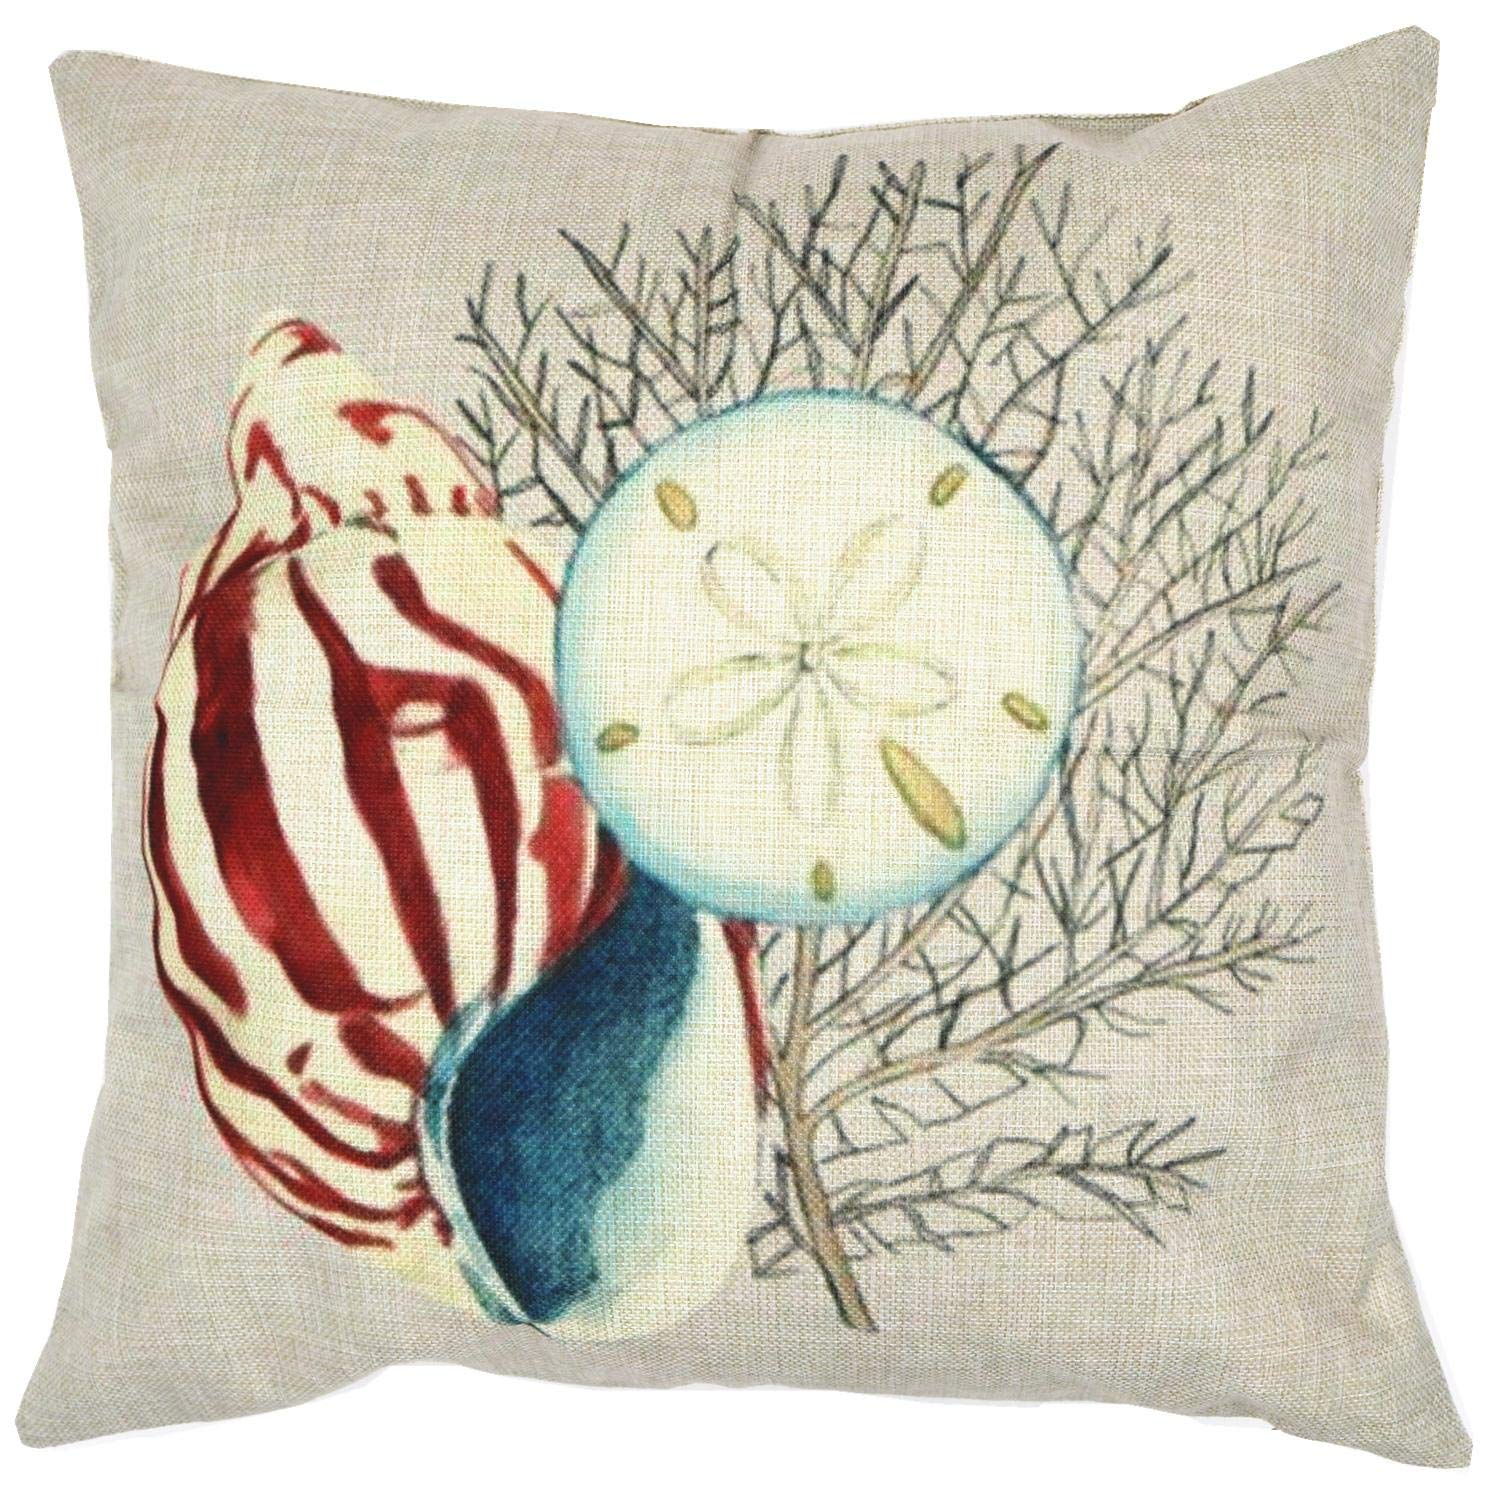 ZUEXT Home Decor Throw Pillowcases Cotton Linen Cushion Cover Cases for Couch//Sofa//Bedroom//Living Room//Kitchen//Car Square Pillow Case 18 x 18 inch Peacock Decorative Throw Pillow Covers Set of 4